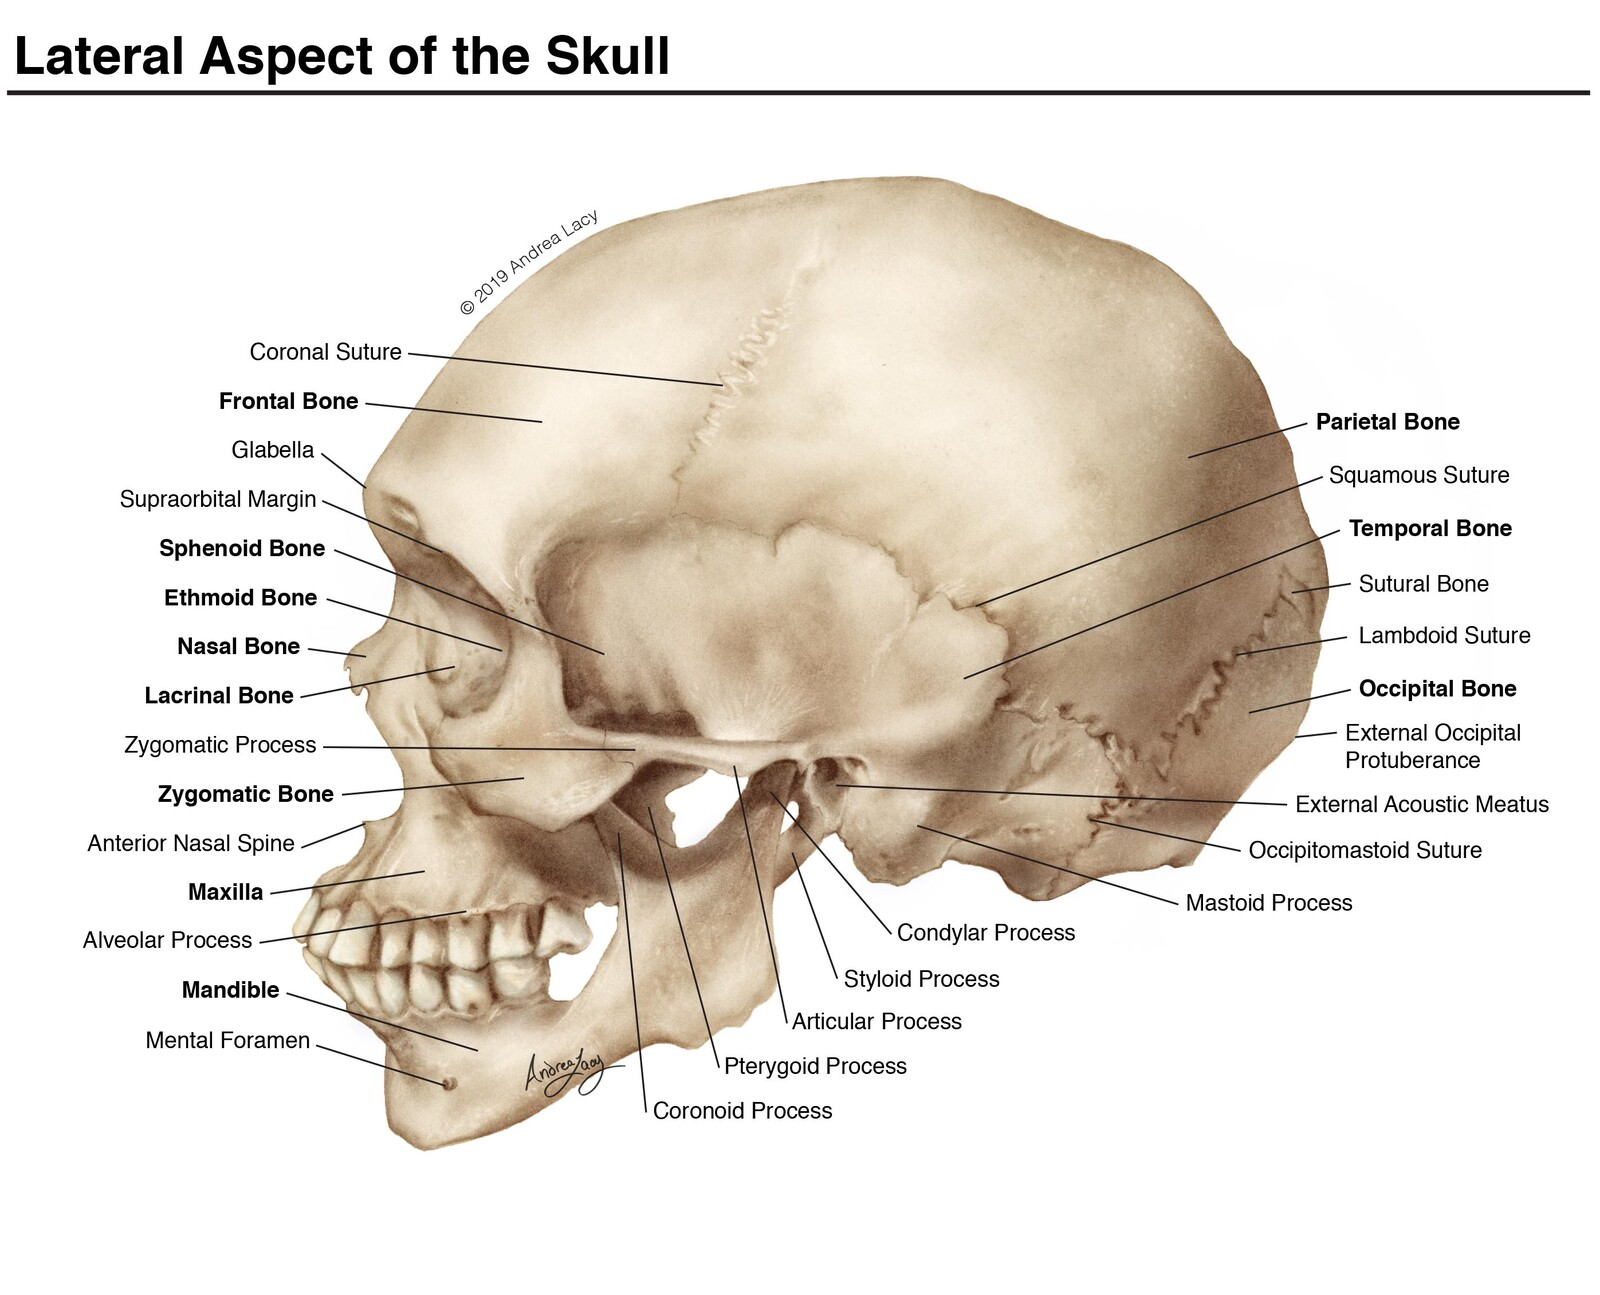 Lateral Aspect of the Skull